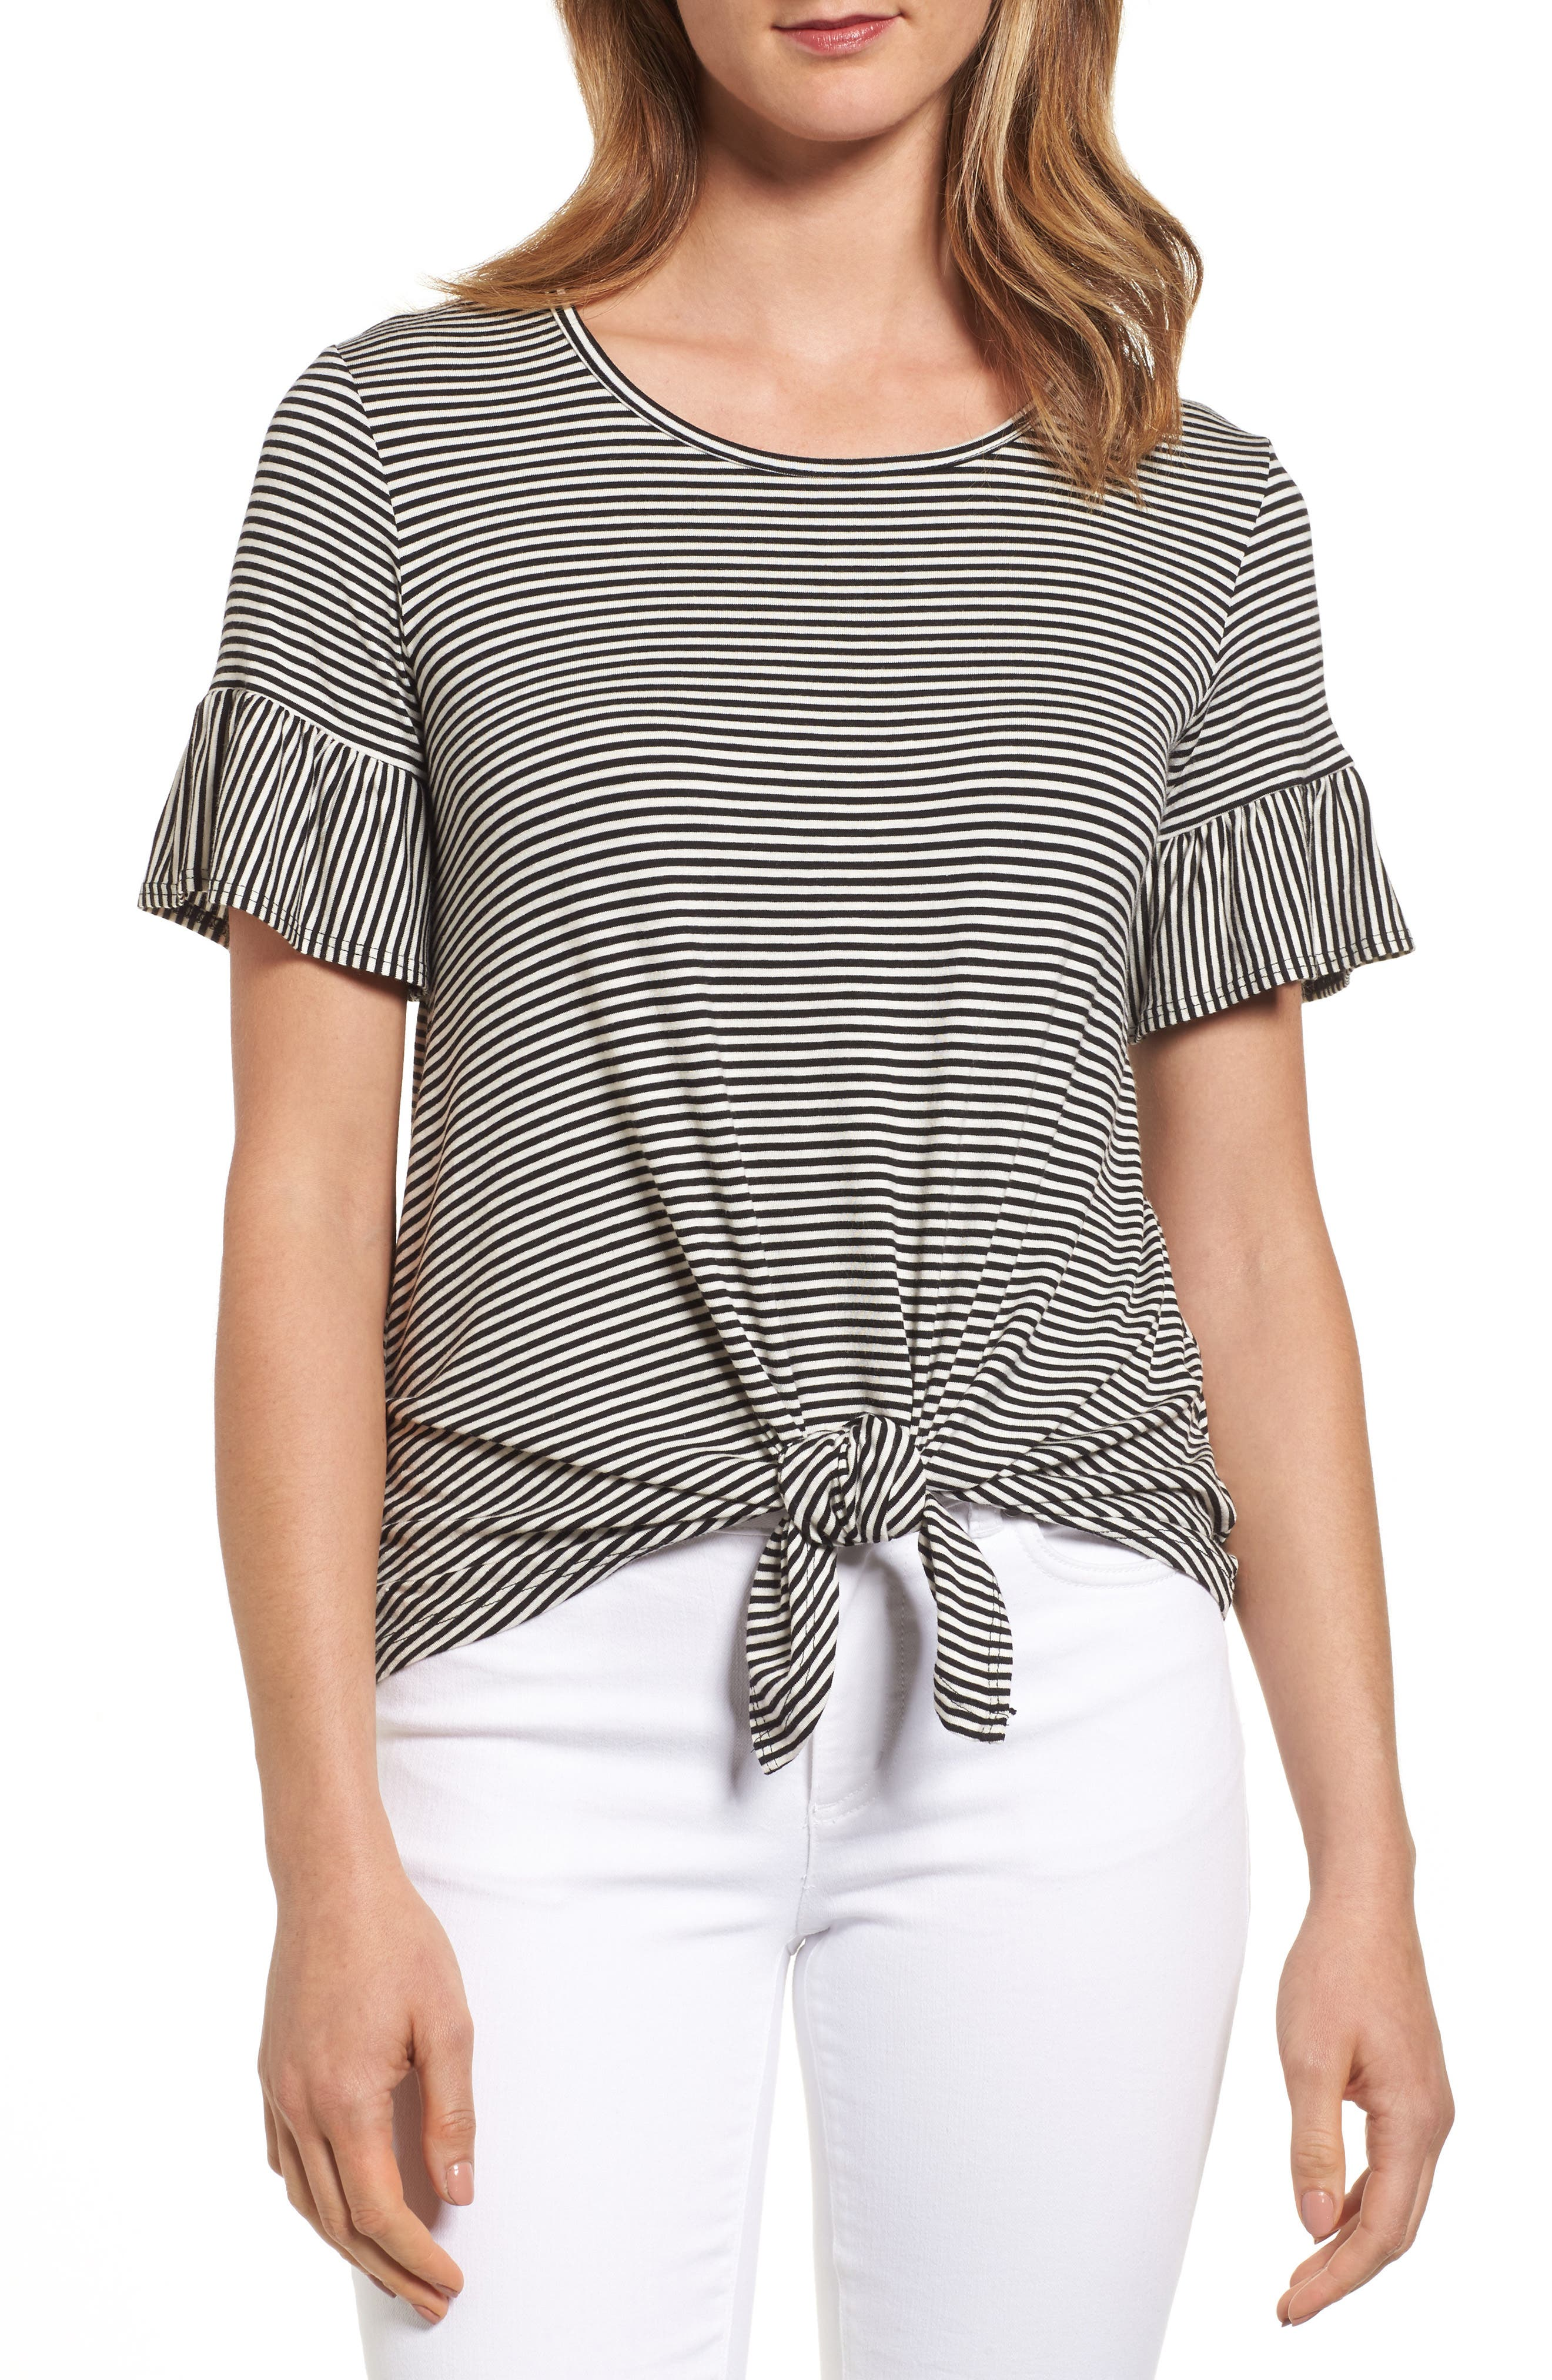 Main Image - Bobeau Bell Sleeve Tie Front Top (Regular & Petite)